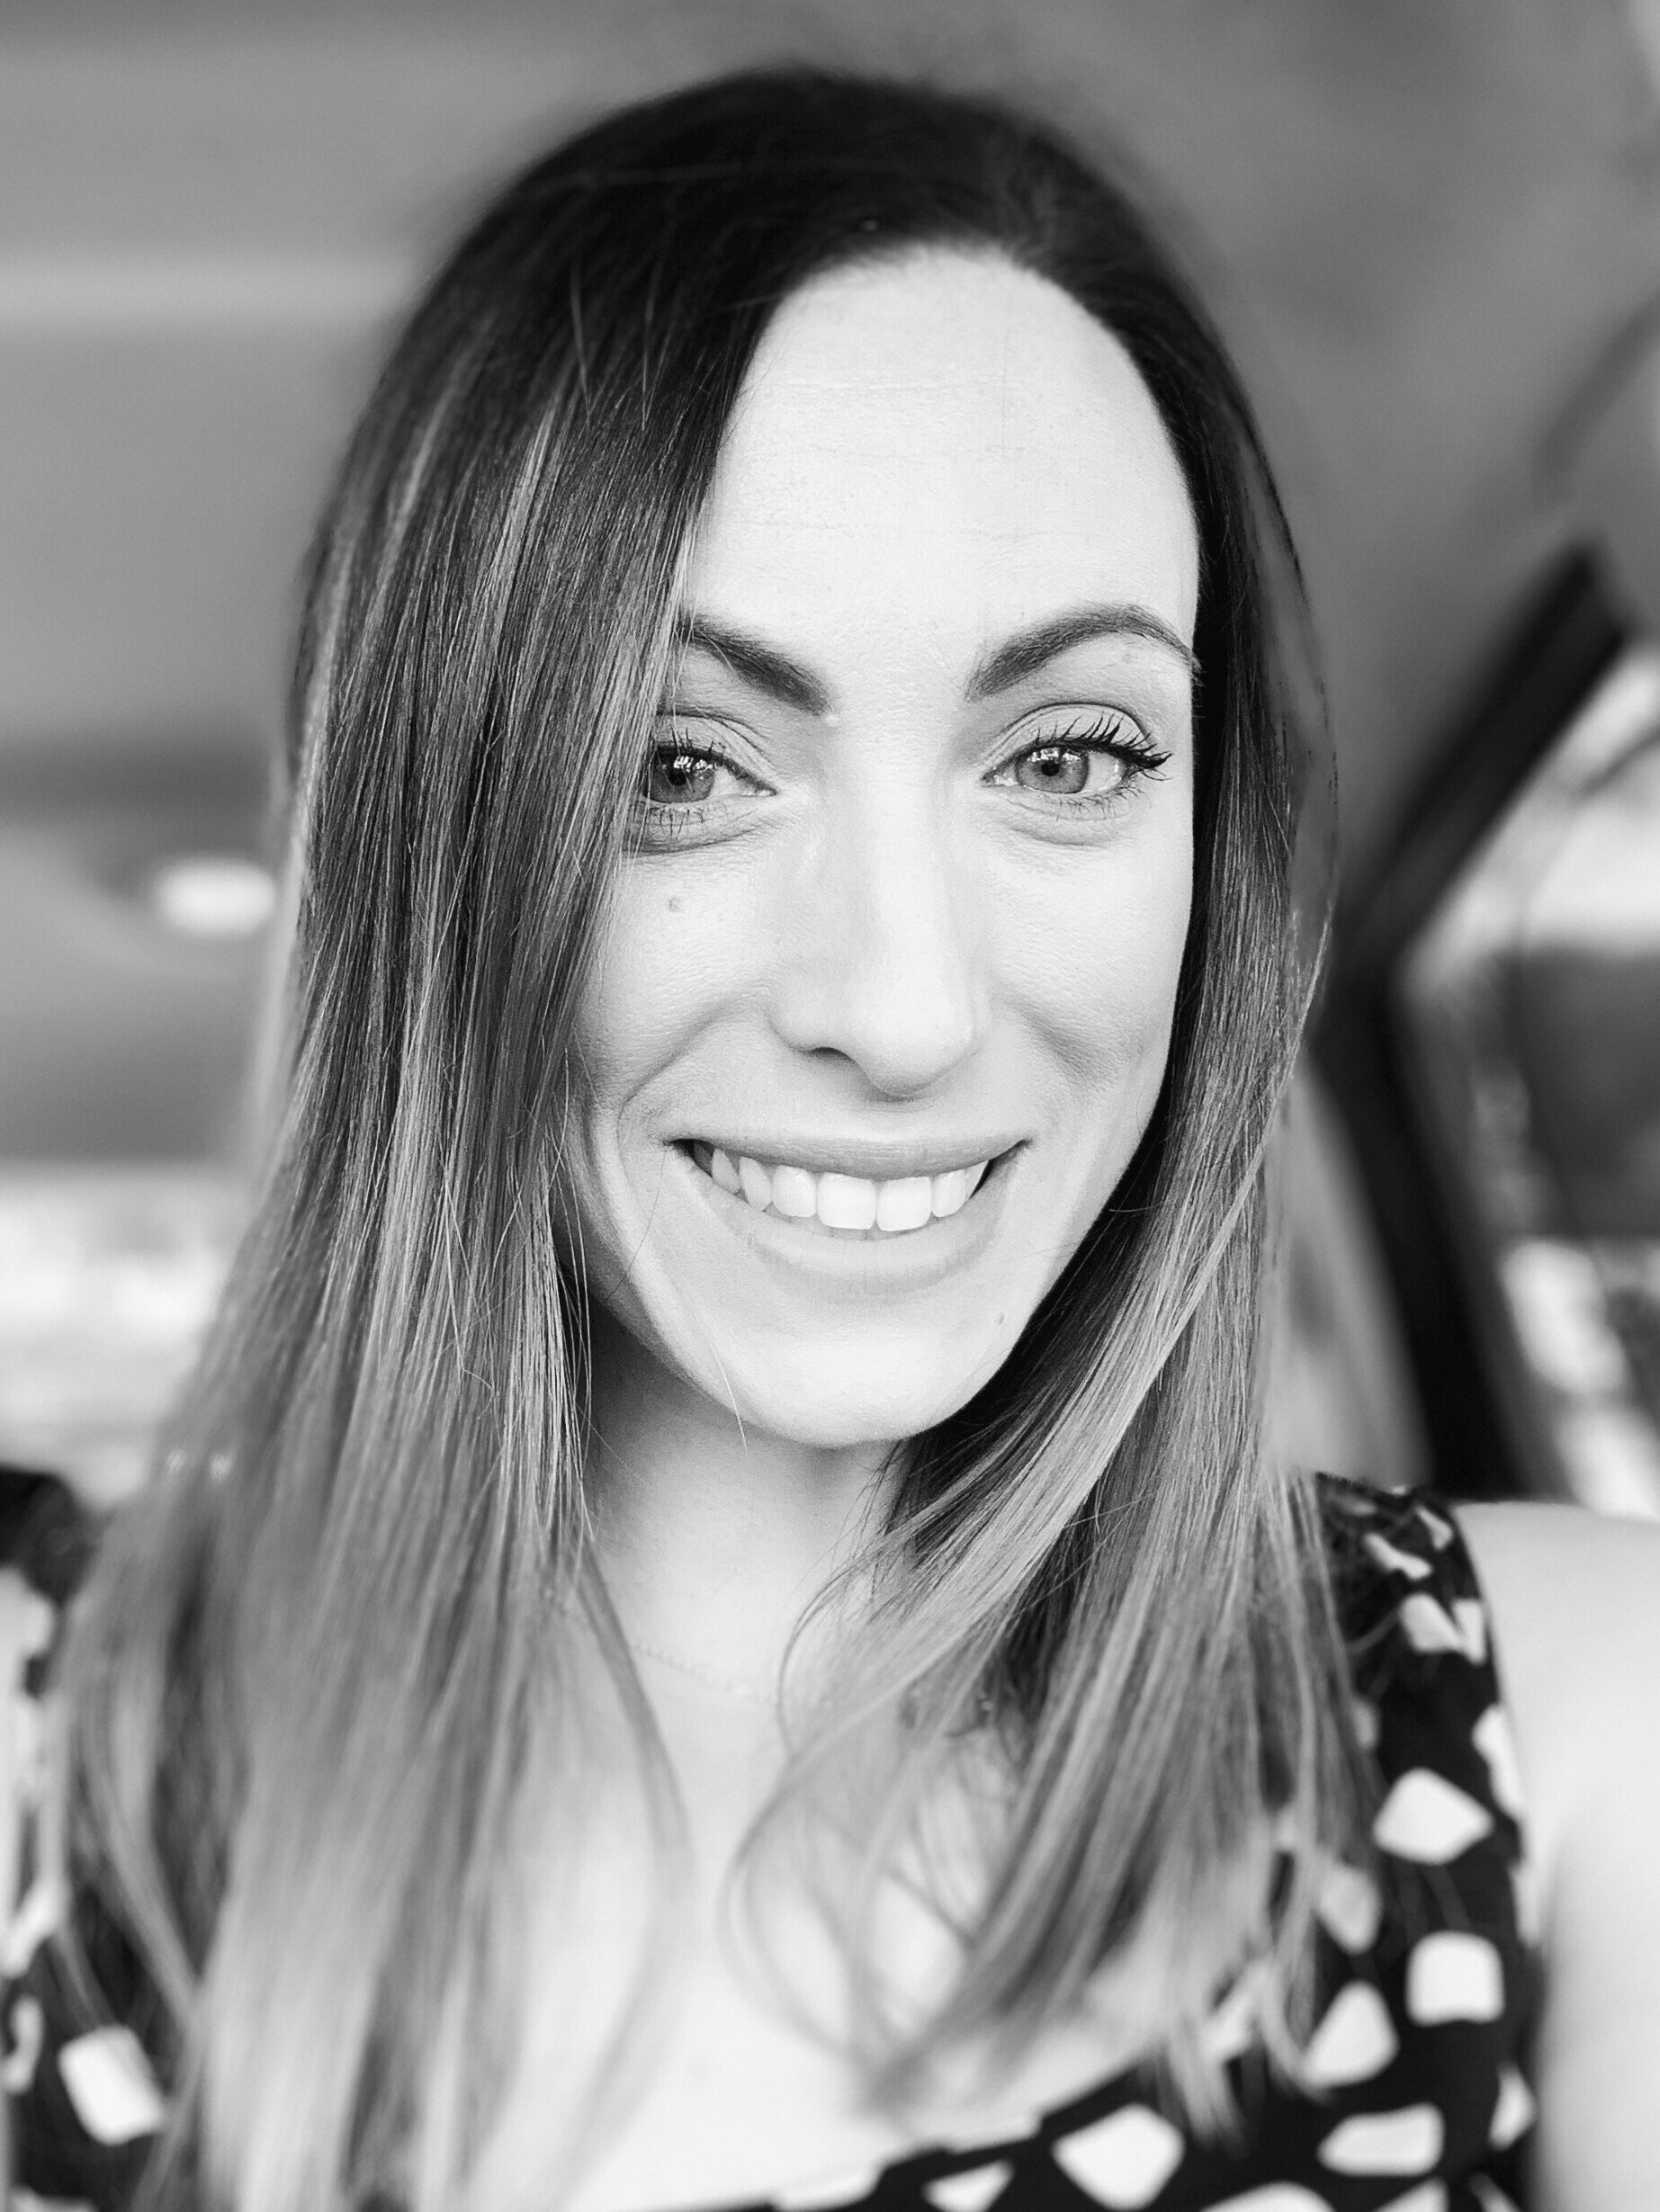 Charlotte Wright - Birmingham Teacher & Owner - Hello, I'm Charlotte, and mother to my wonderful son who was born in 2017. He keeps me on my toes and is my world!My own experience of pregnancy started off fairly straightforward, I had visions of the 'perfect birth' as I think we all do! This ended up with an induction at 38 weeks and my son making a dramatic entrance into the world via forceps in theatre. I definitely learnt that although you can have the choice of the kind of birth you had hoped for taken away, you do still have choices, and we managed to create a lovely calm atmosphere during my induction that I look back on with fond memories.Becoming a parent is the biggest roller-coaster of emotions, and I have learnt there is no 'one size fits all' when it comes to raising a child, it is about the right fit for you and your baby.I am so excited to be part of the Mummas and Beans family. I am looking forward to providing you all with information, support and guidance to make informed decisions and feel in control of your pregnancy, birth and beyond!